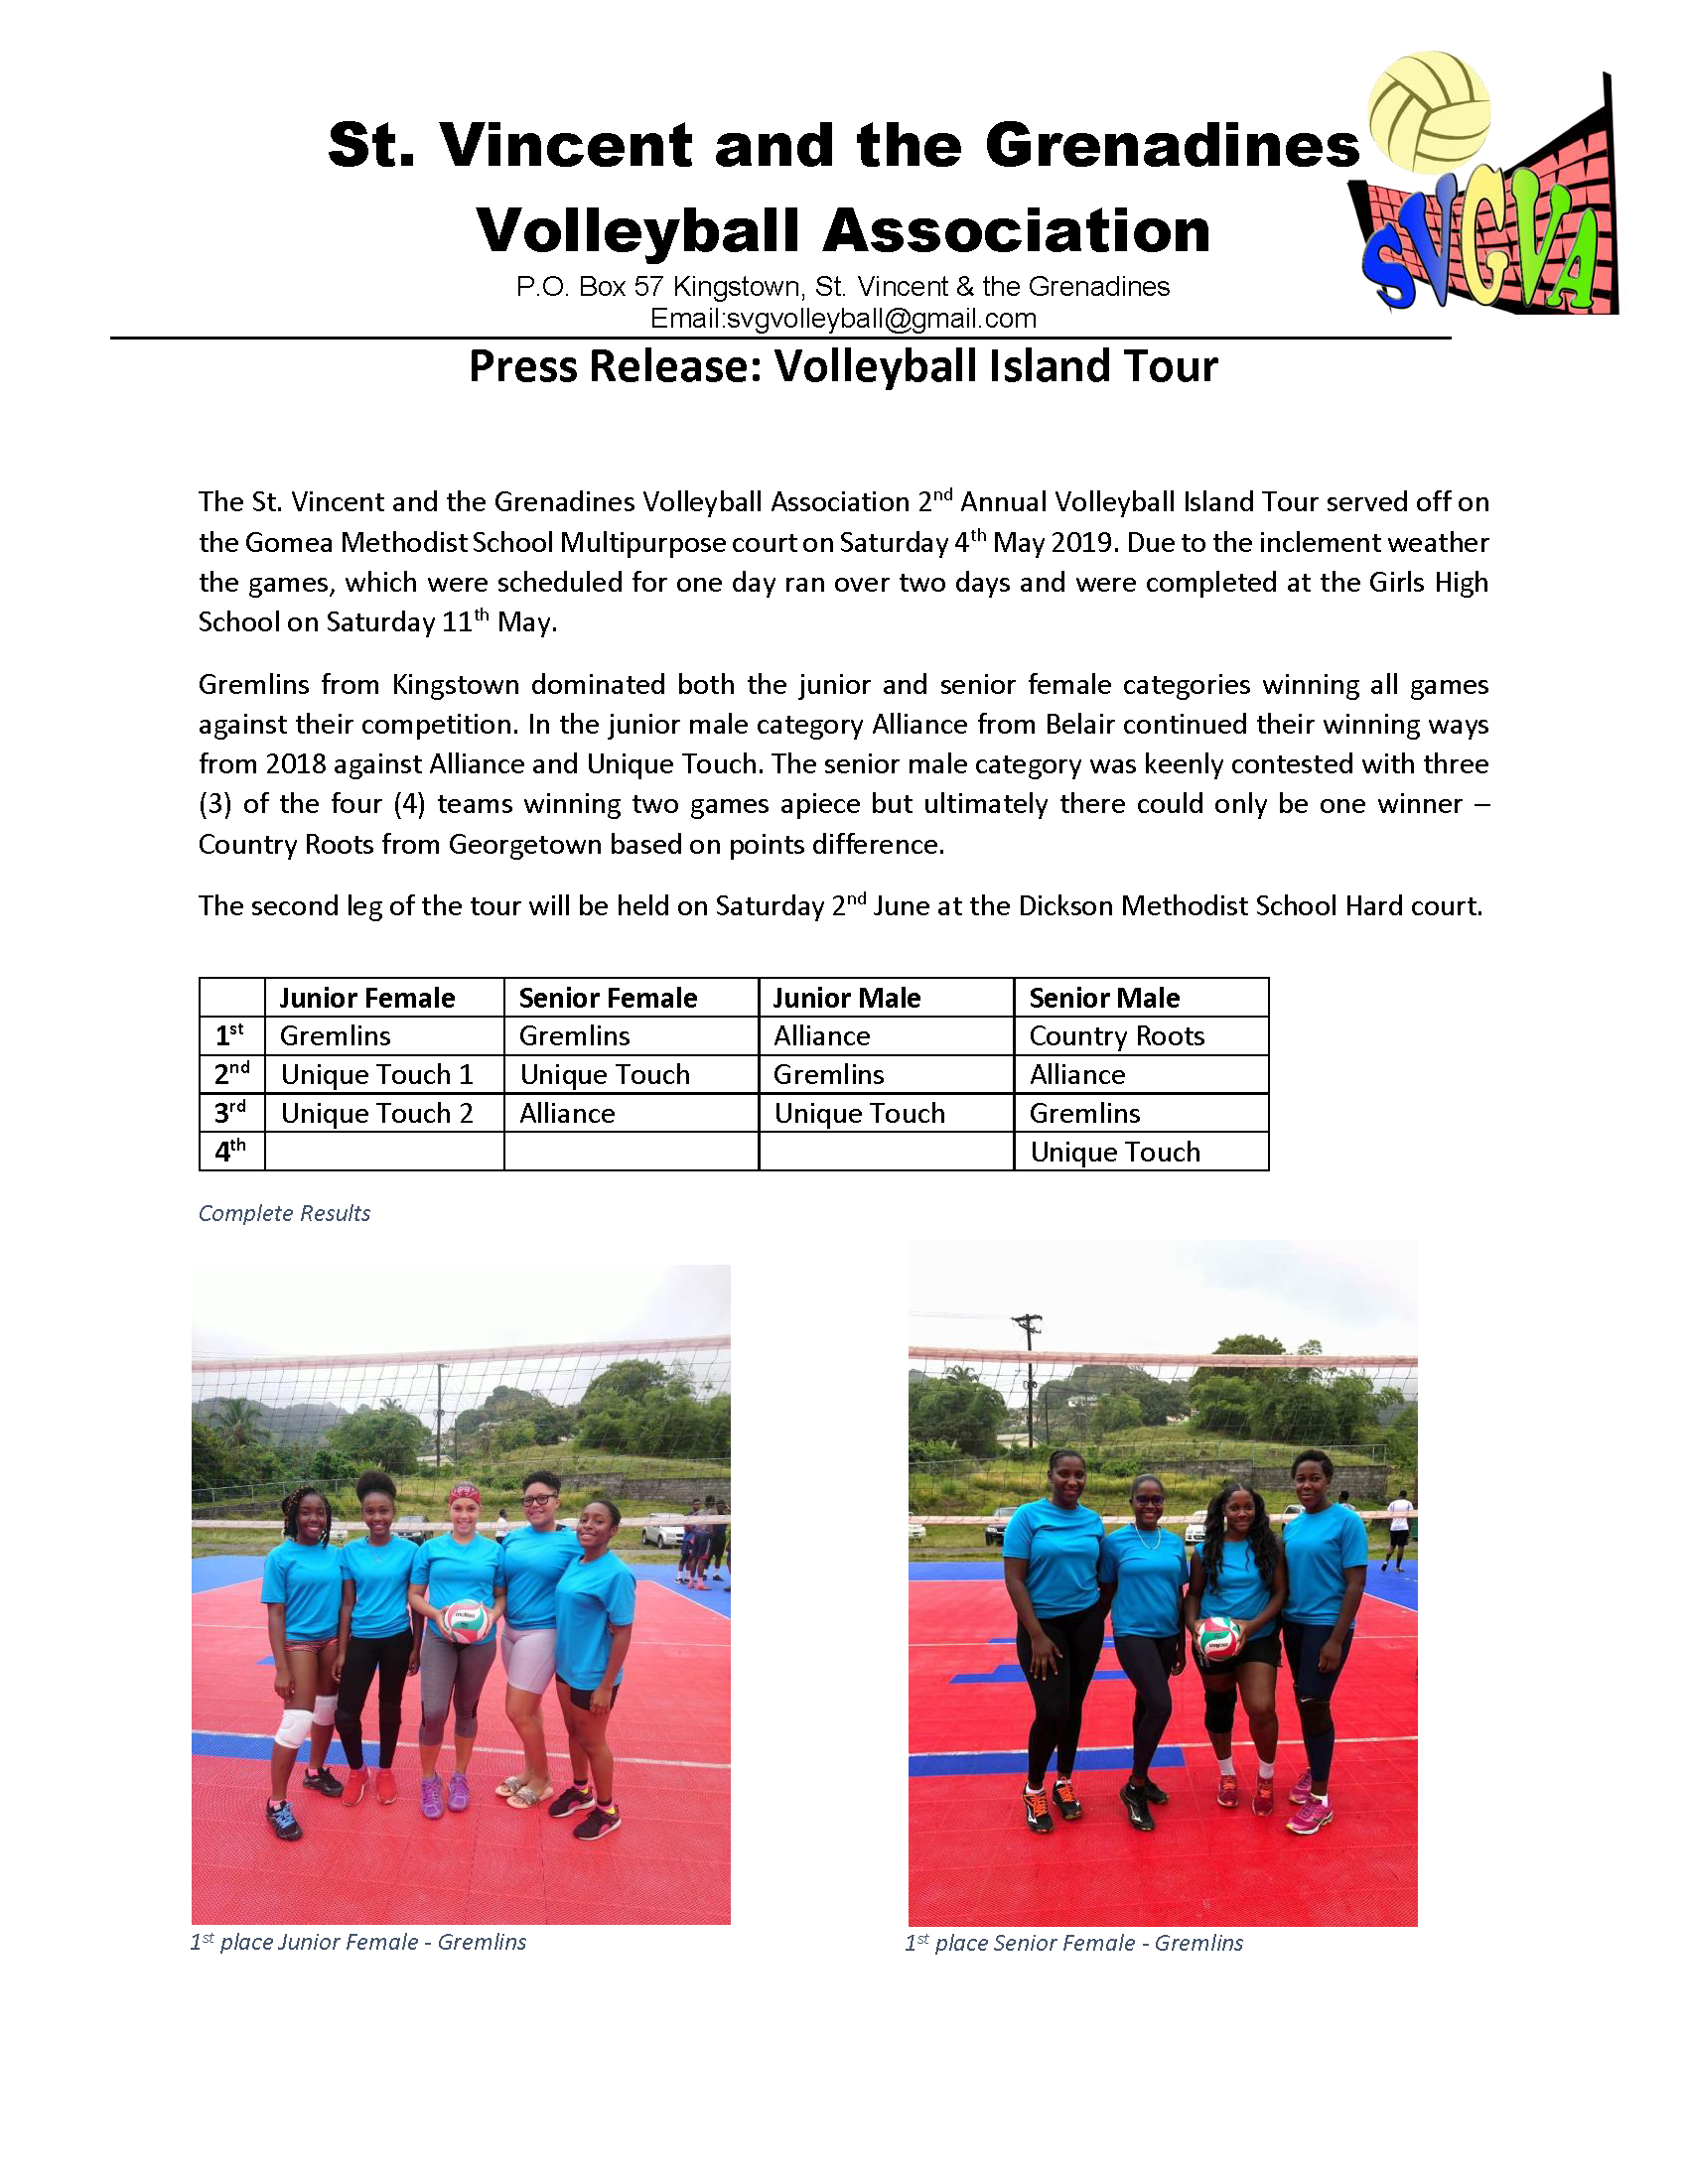 Press Release - Volleyball Island Tour